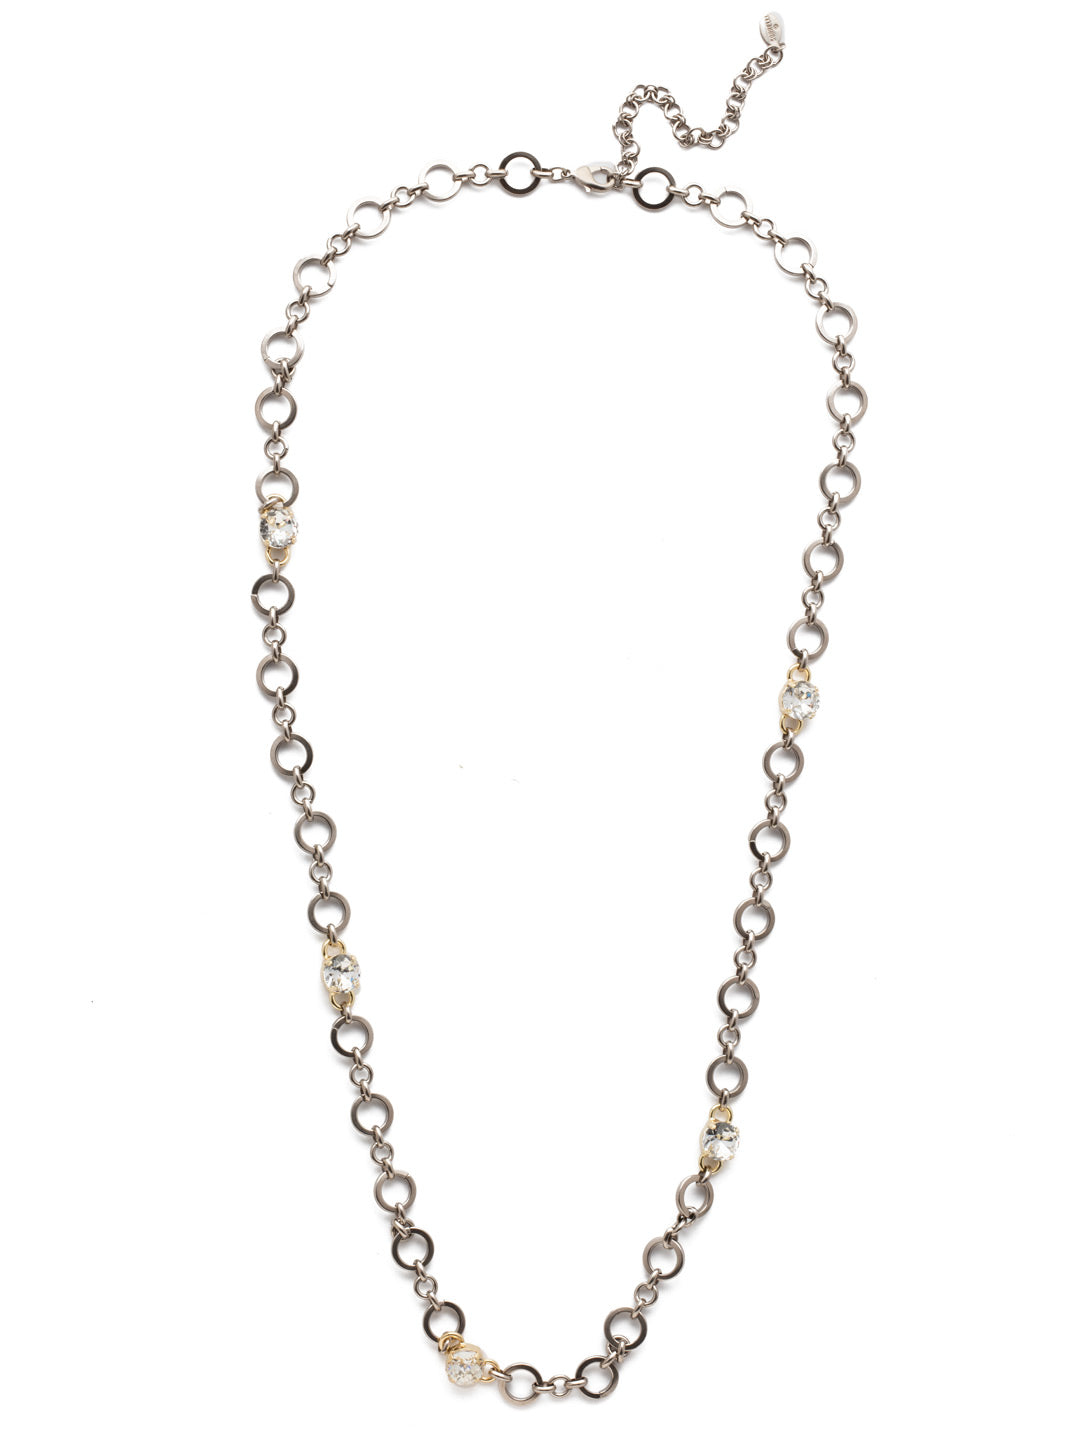 Hadley Tennis Necklace - 4NEF15MXCRY